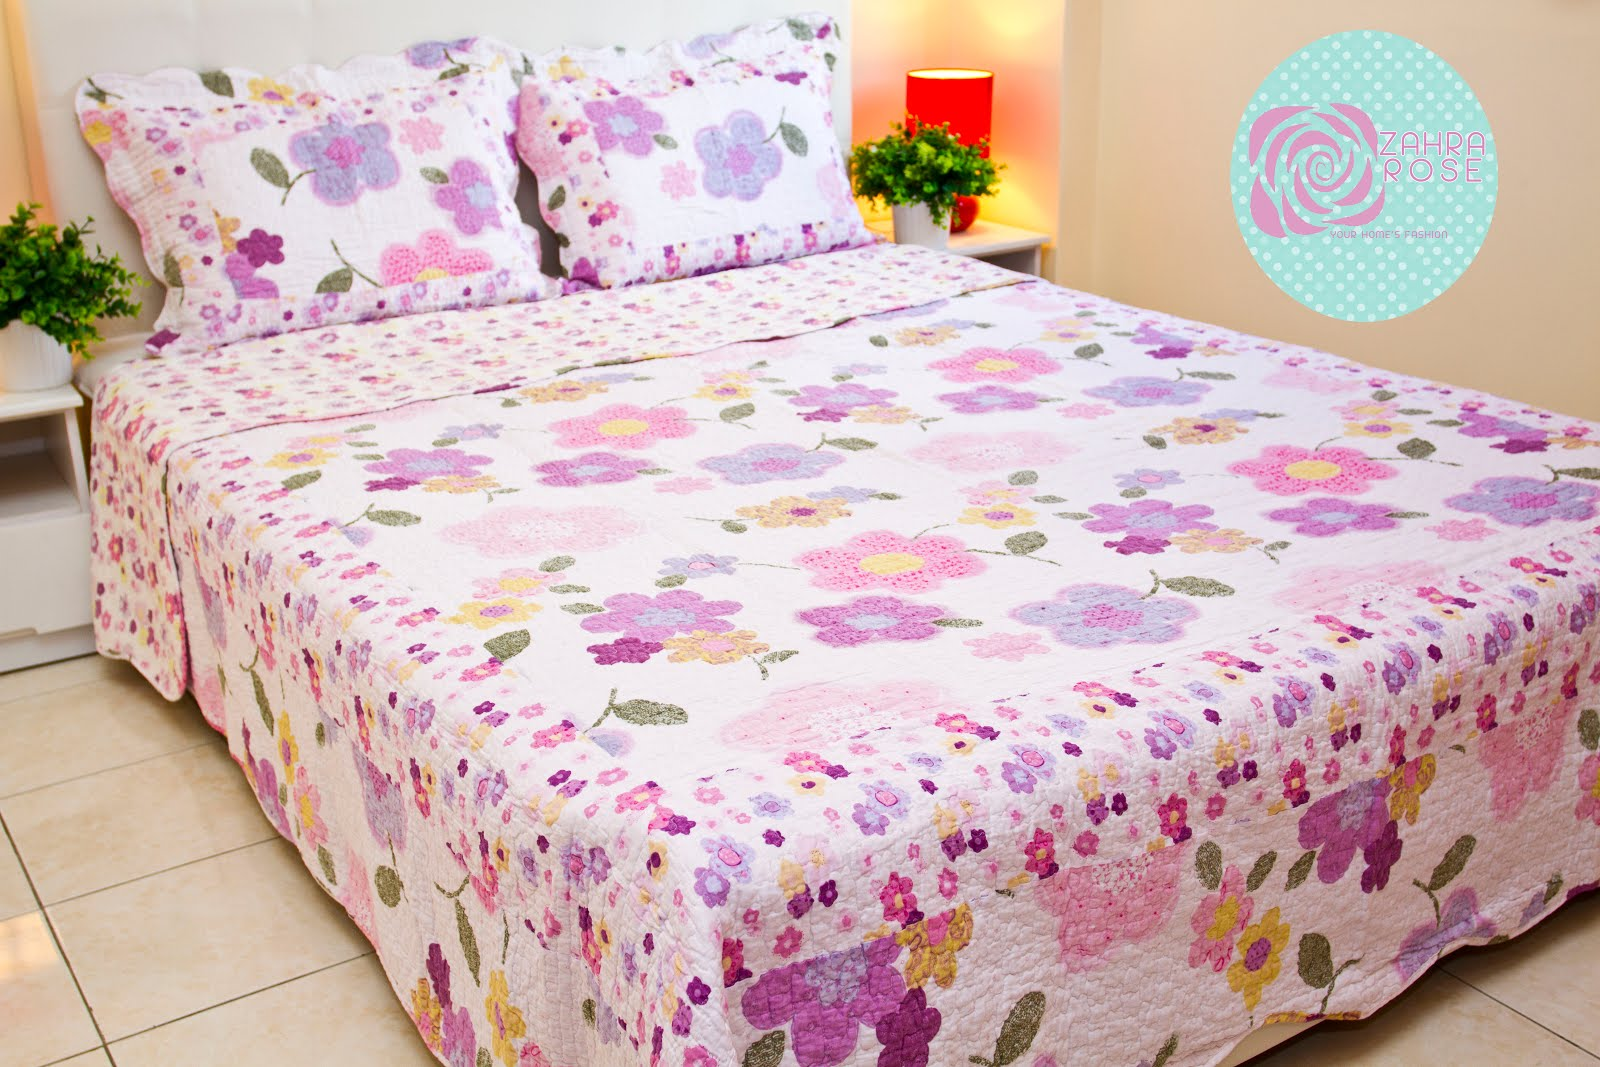 Bed sheet design patchwork - Zr 005